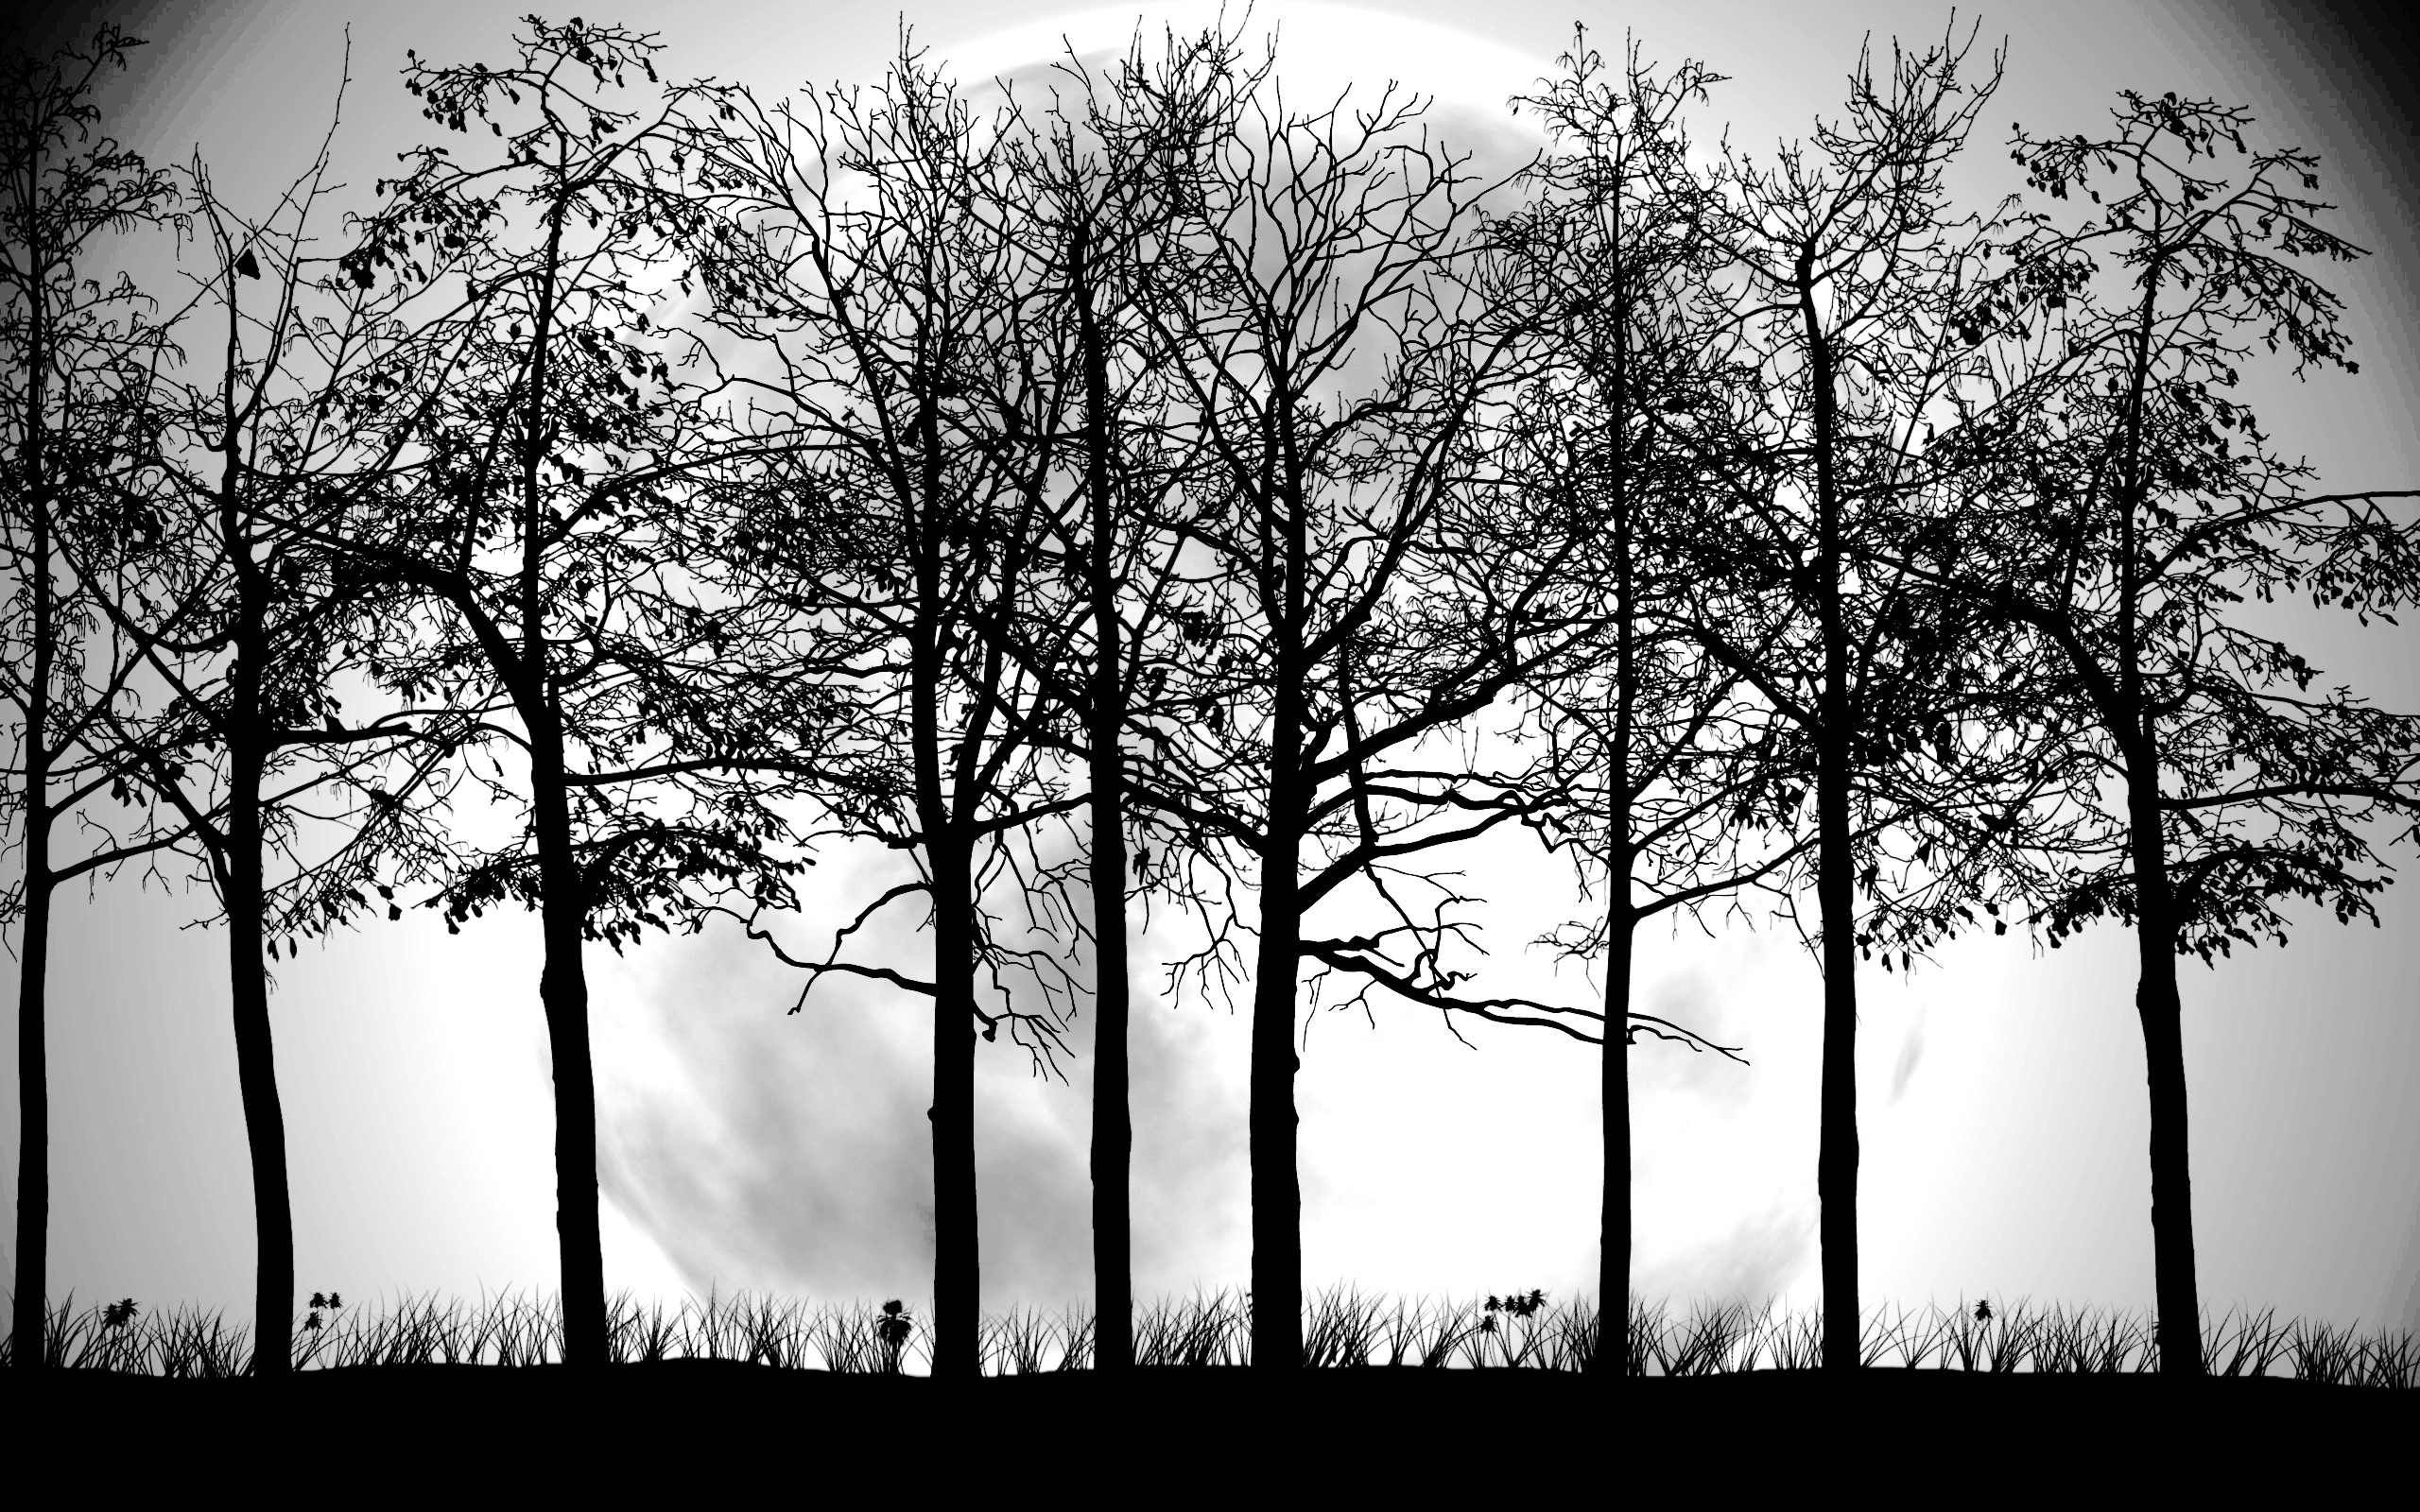 Tree Black and White Wallpapers. Original Size.